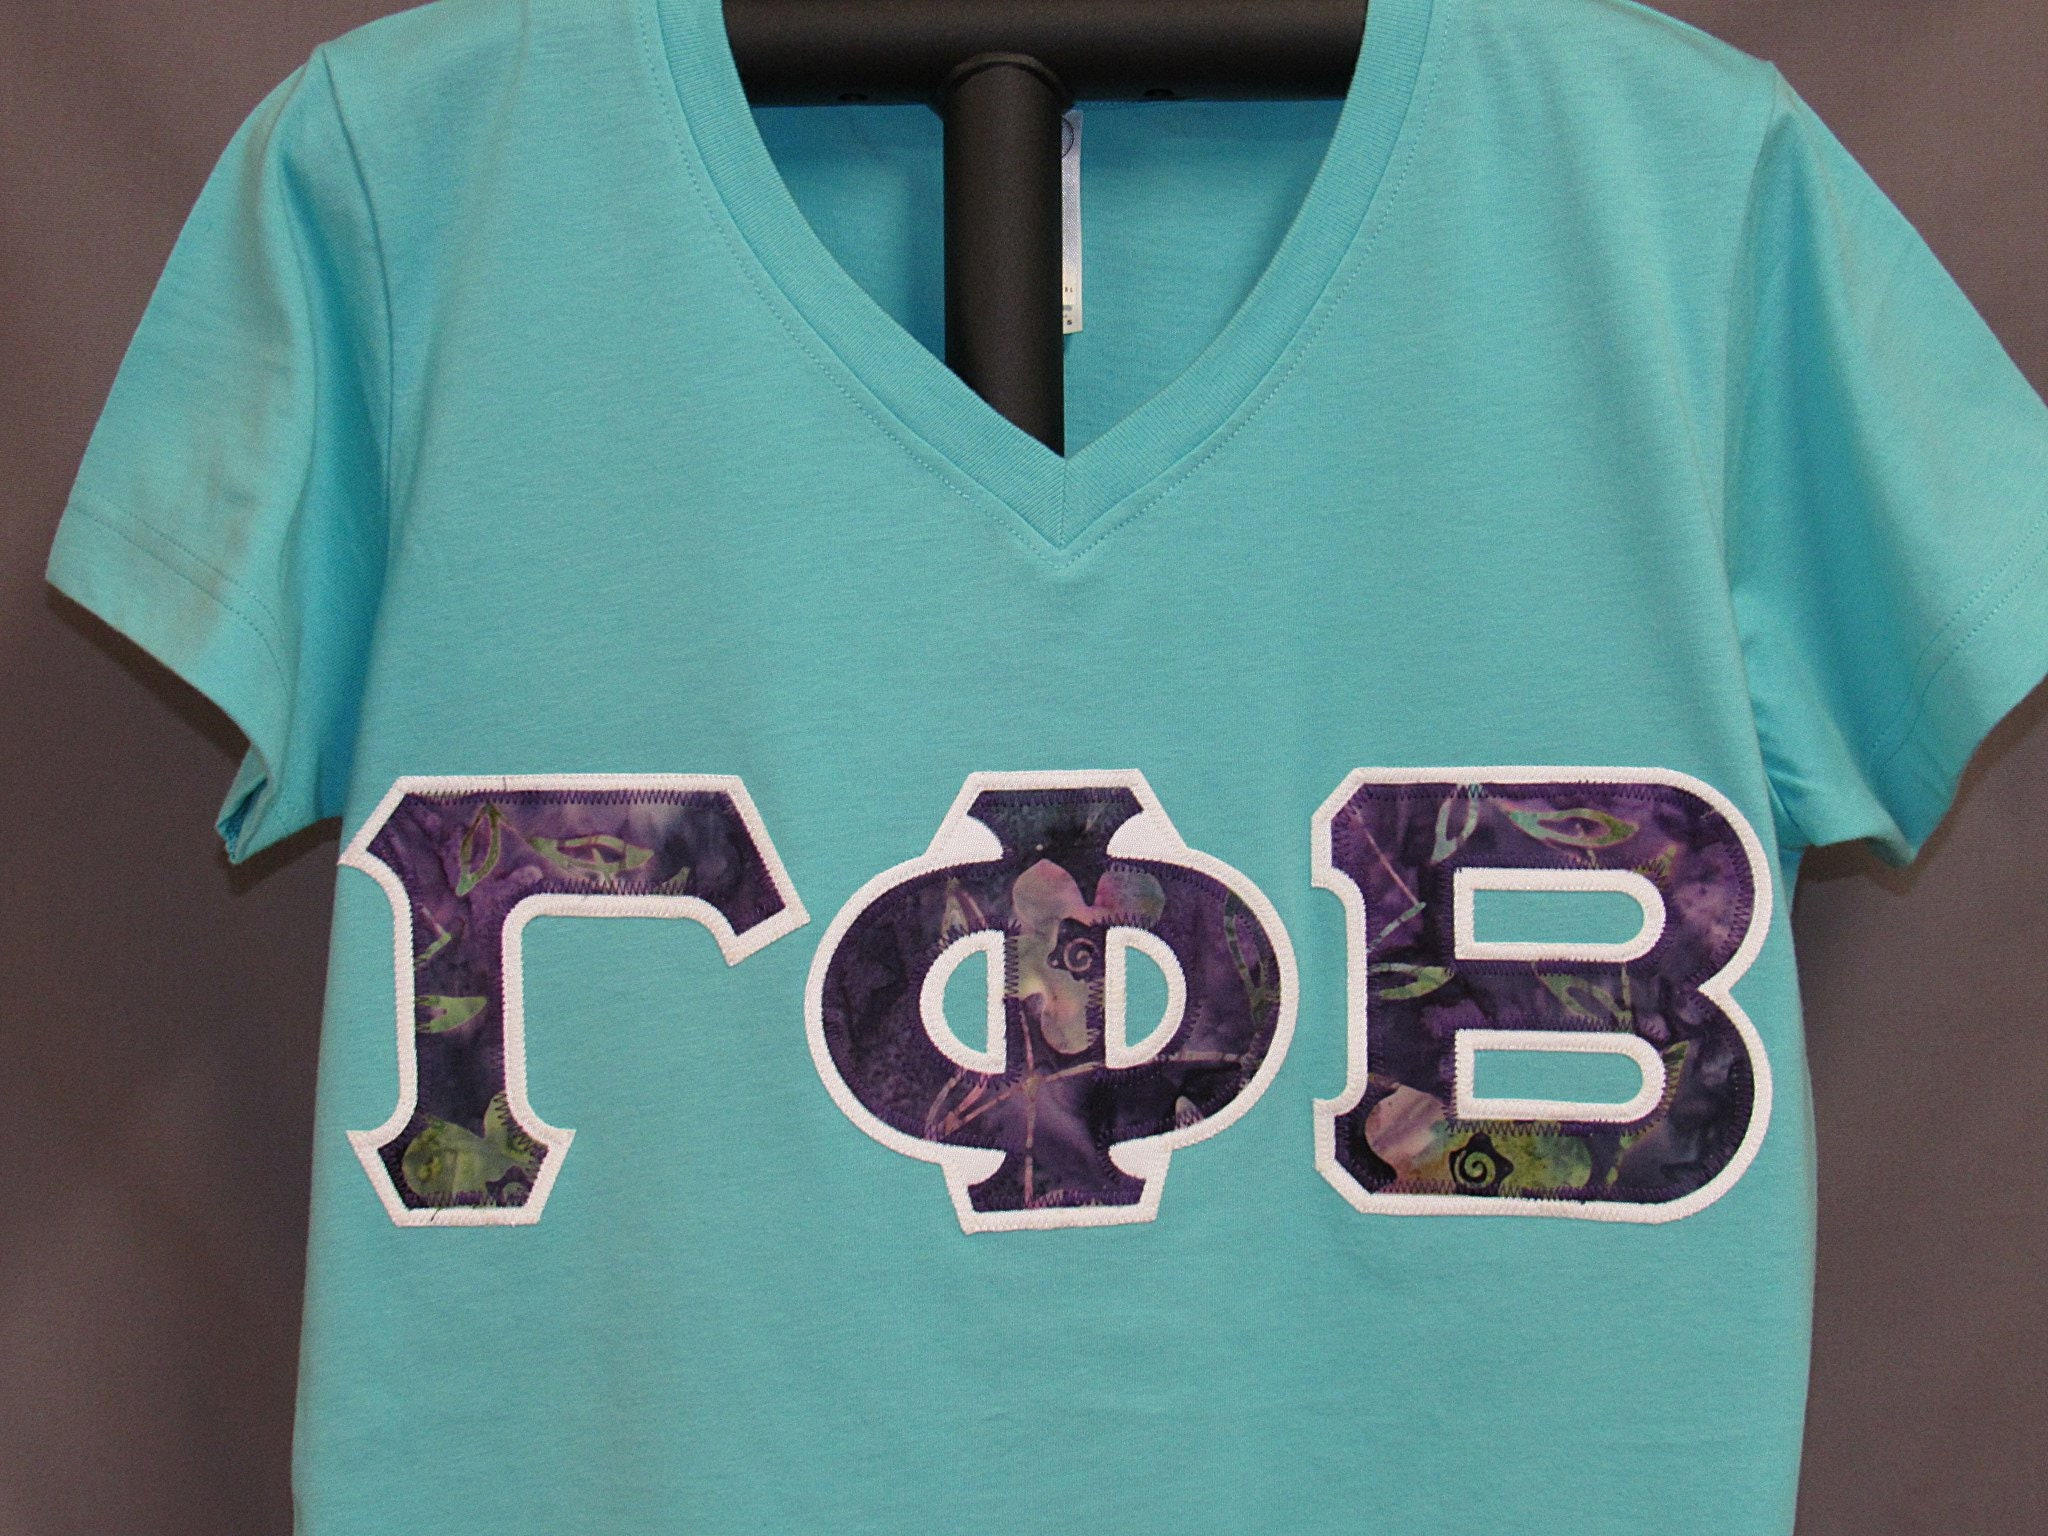 gamma phi beta final clearance 30 off orig price v neck shirt size ladies small only one available sorority double stitch letters